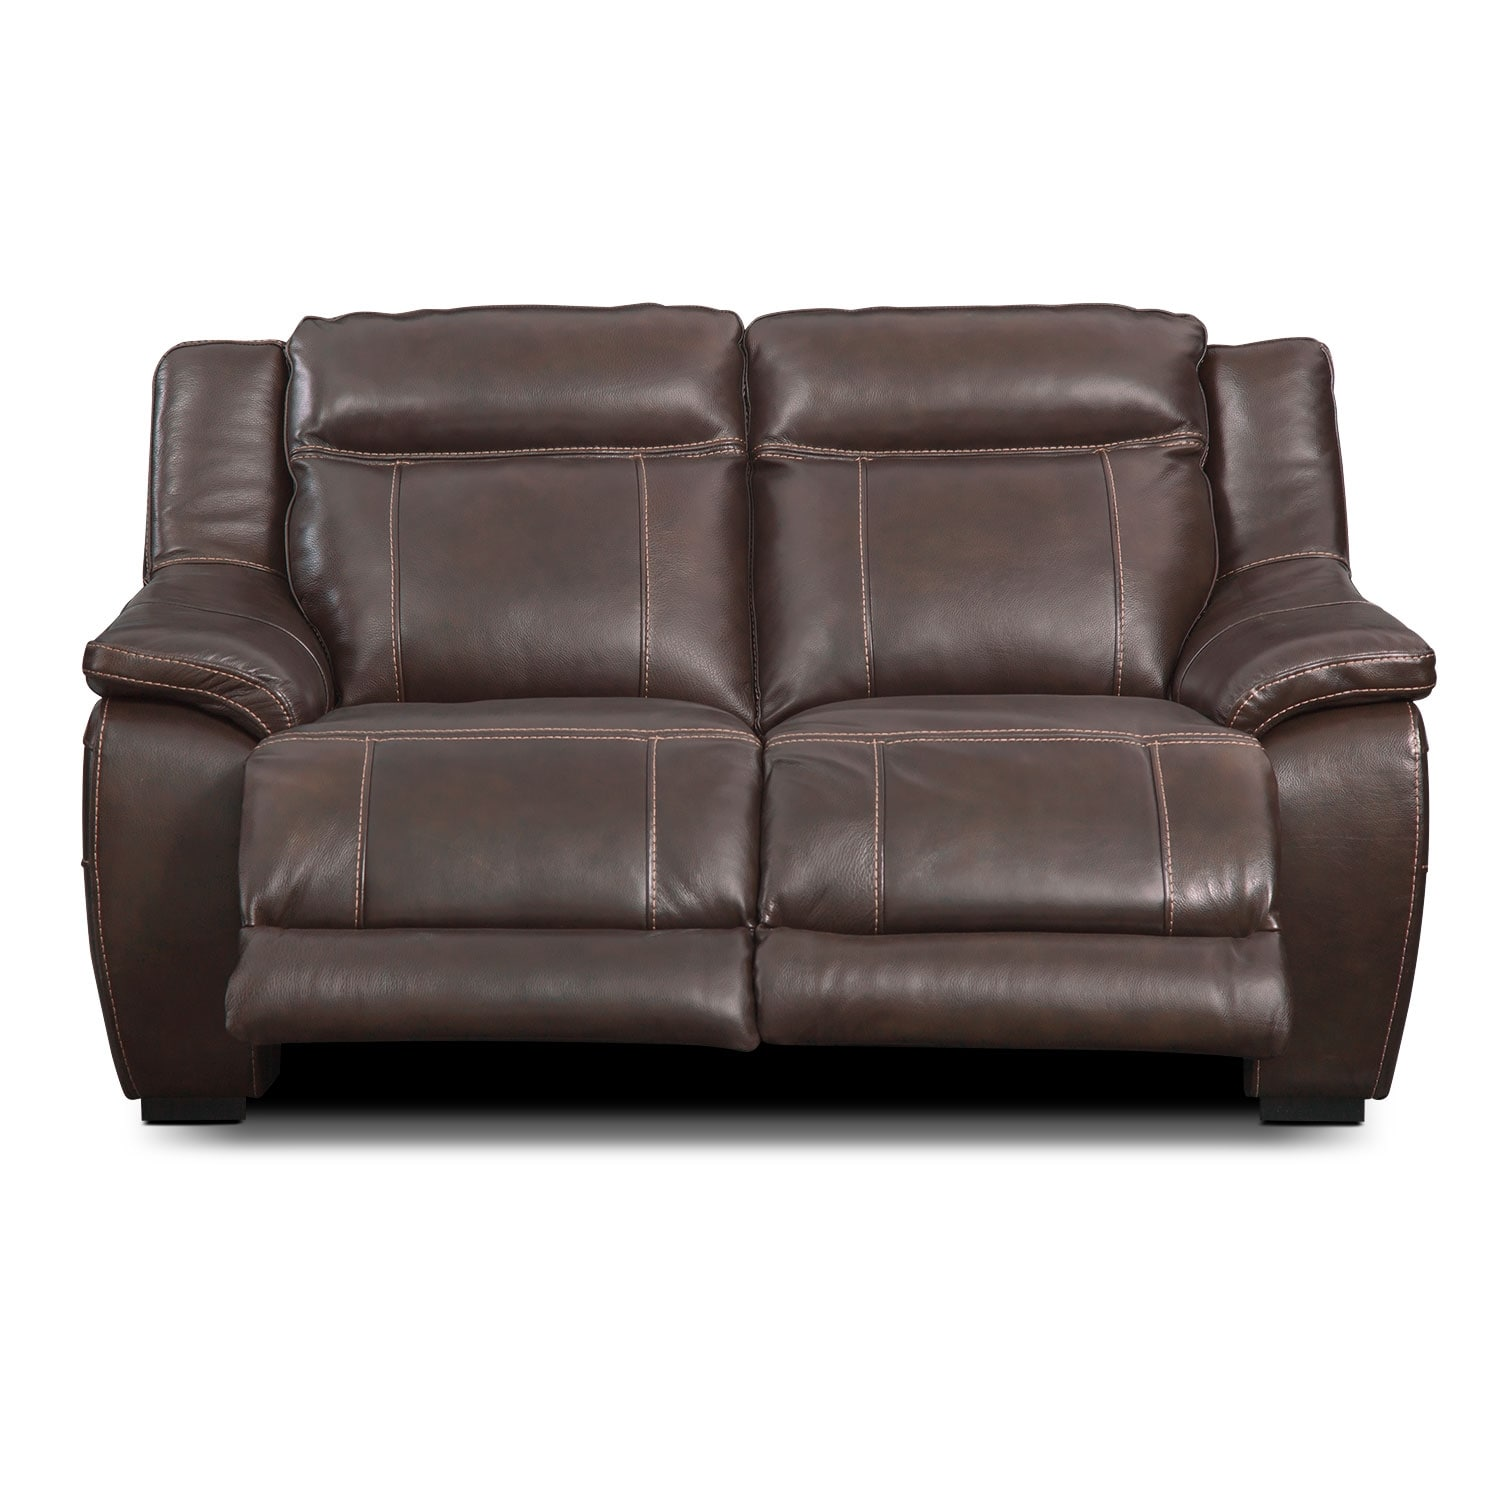 Lido Brown Power Reclining Loveseat Value City Furniture